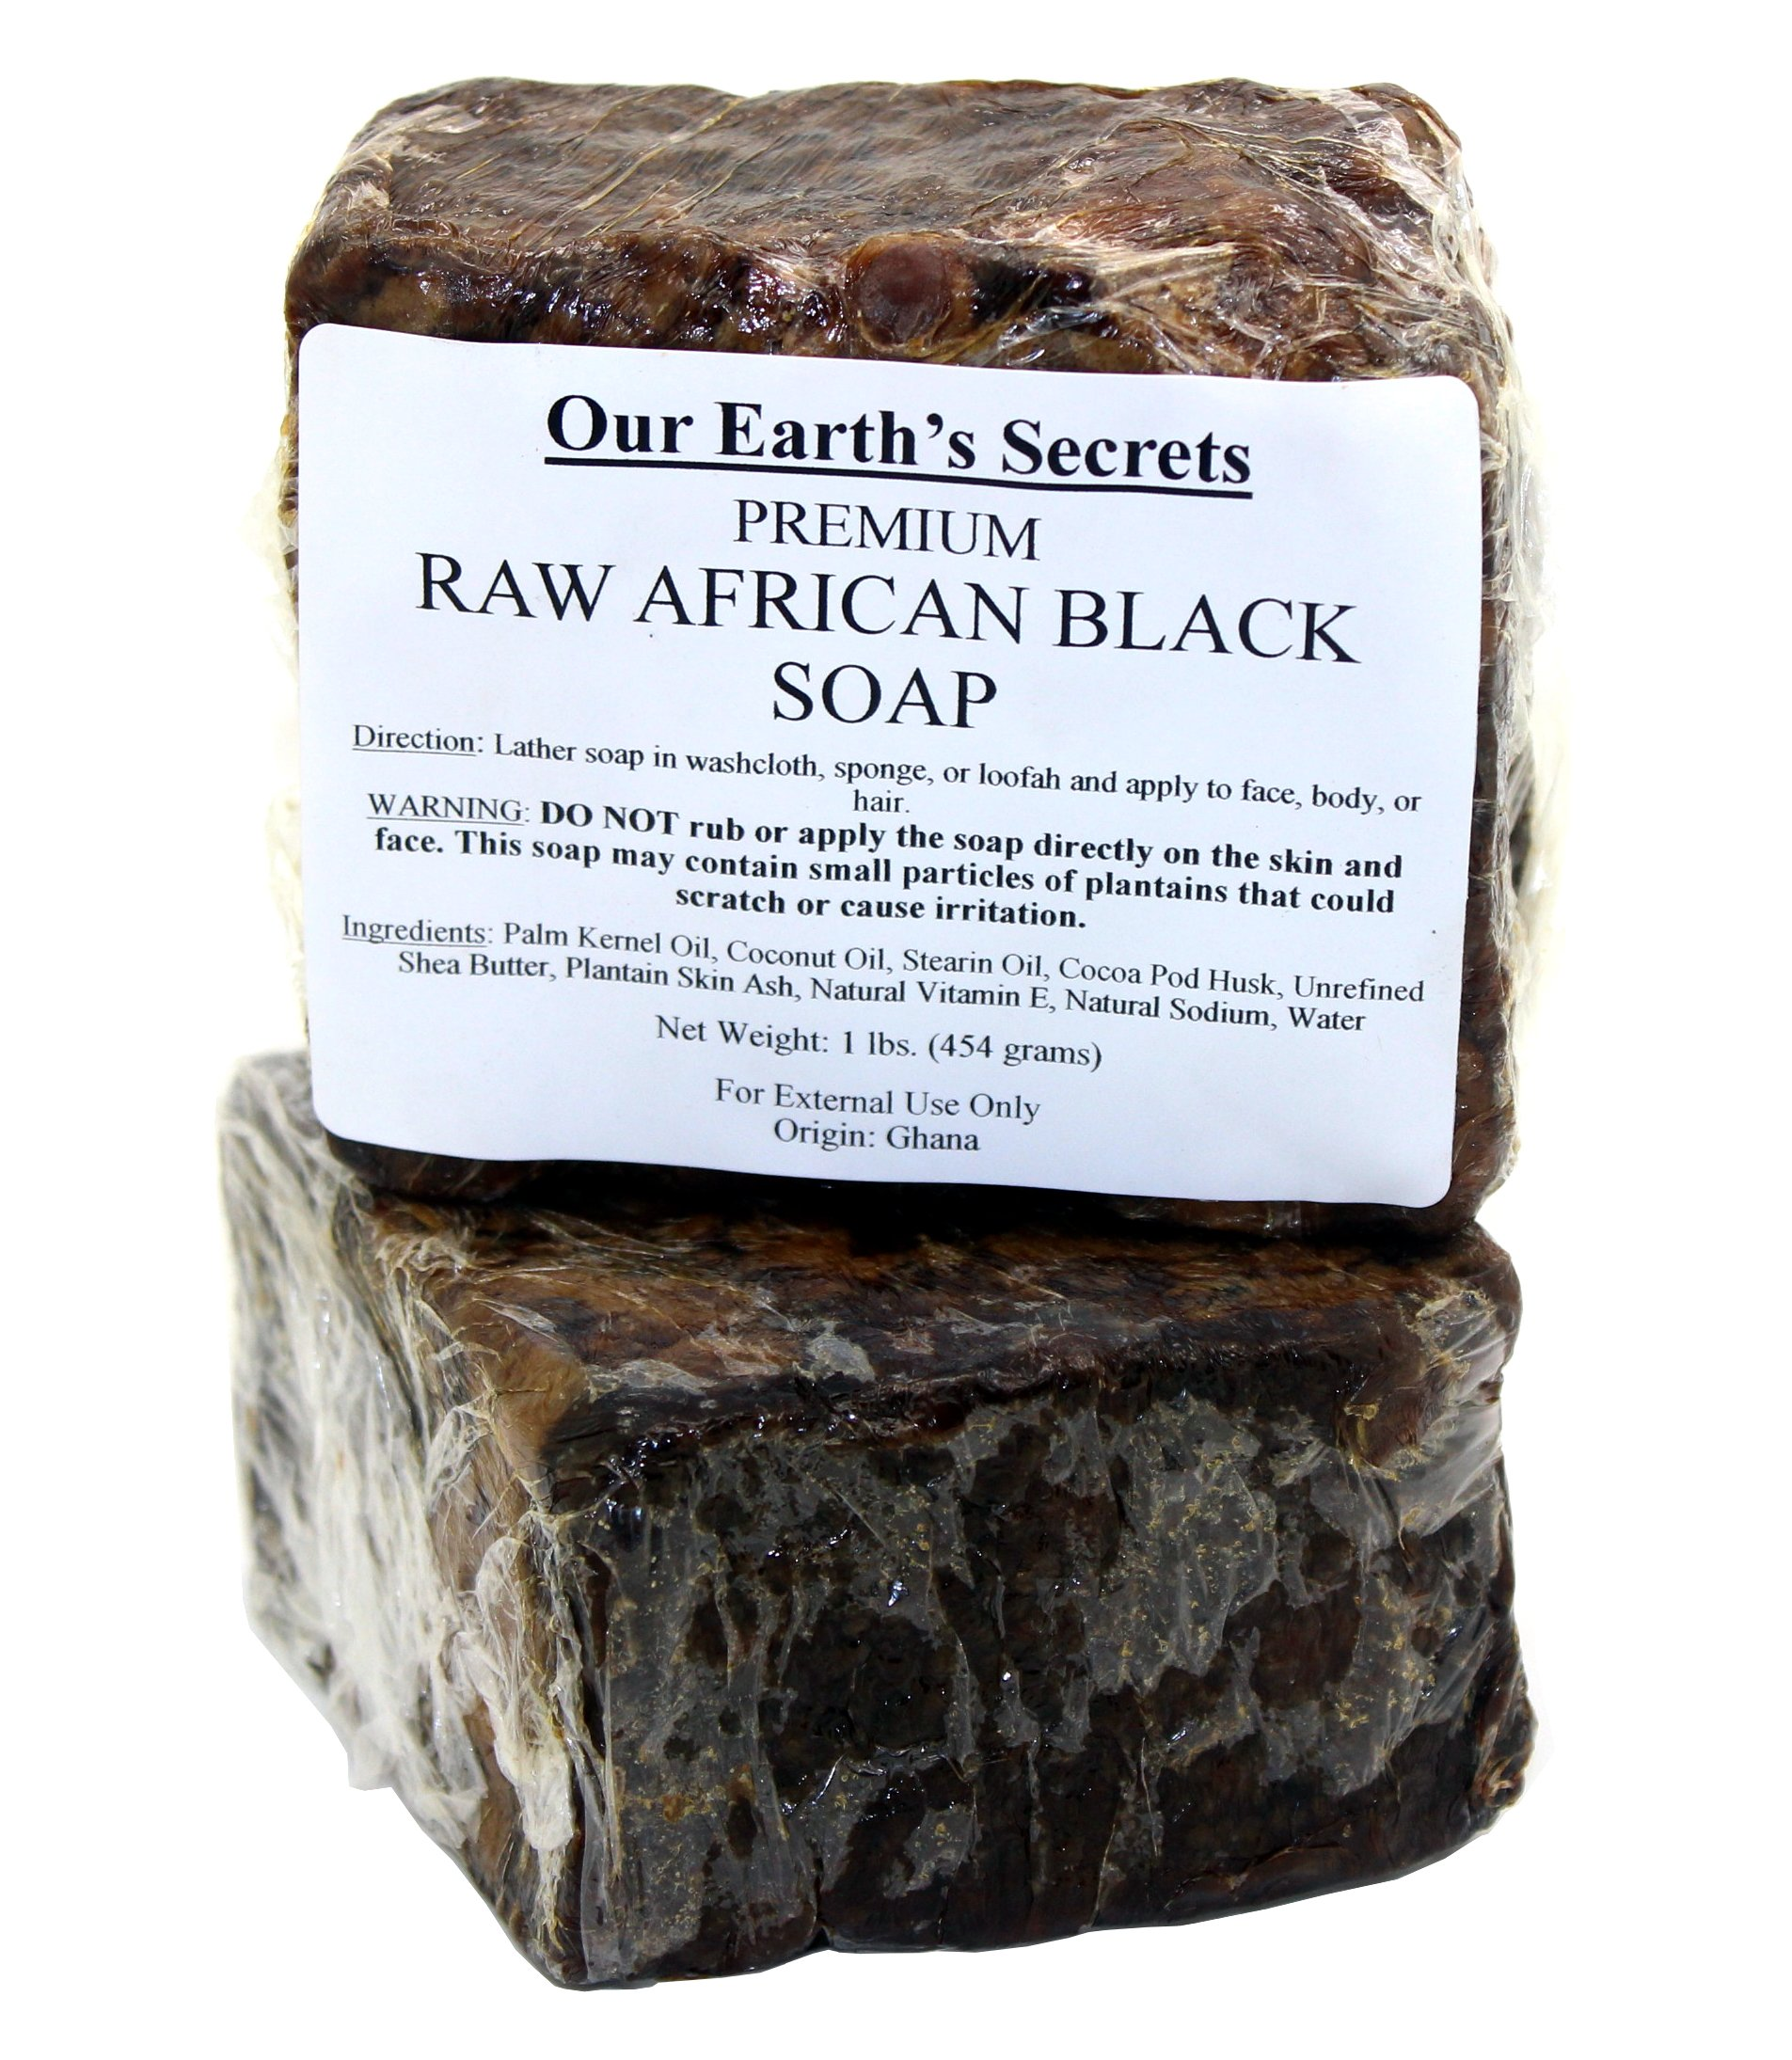 Our Earth's Secrets Raw African Black Soap, 1 lb. by Our Earth's Secrets (Image #3)